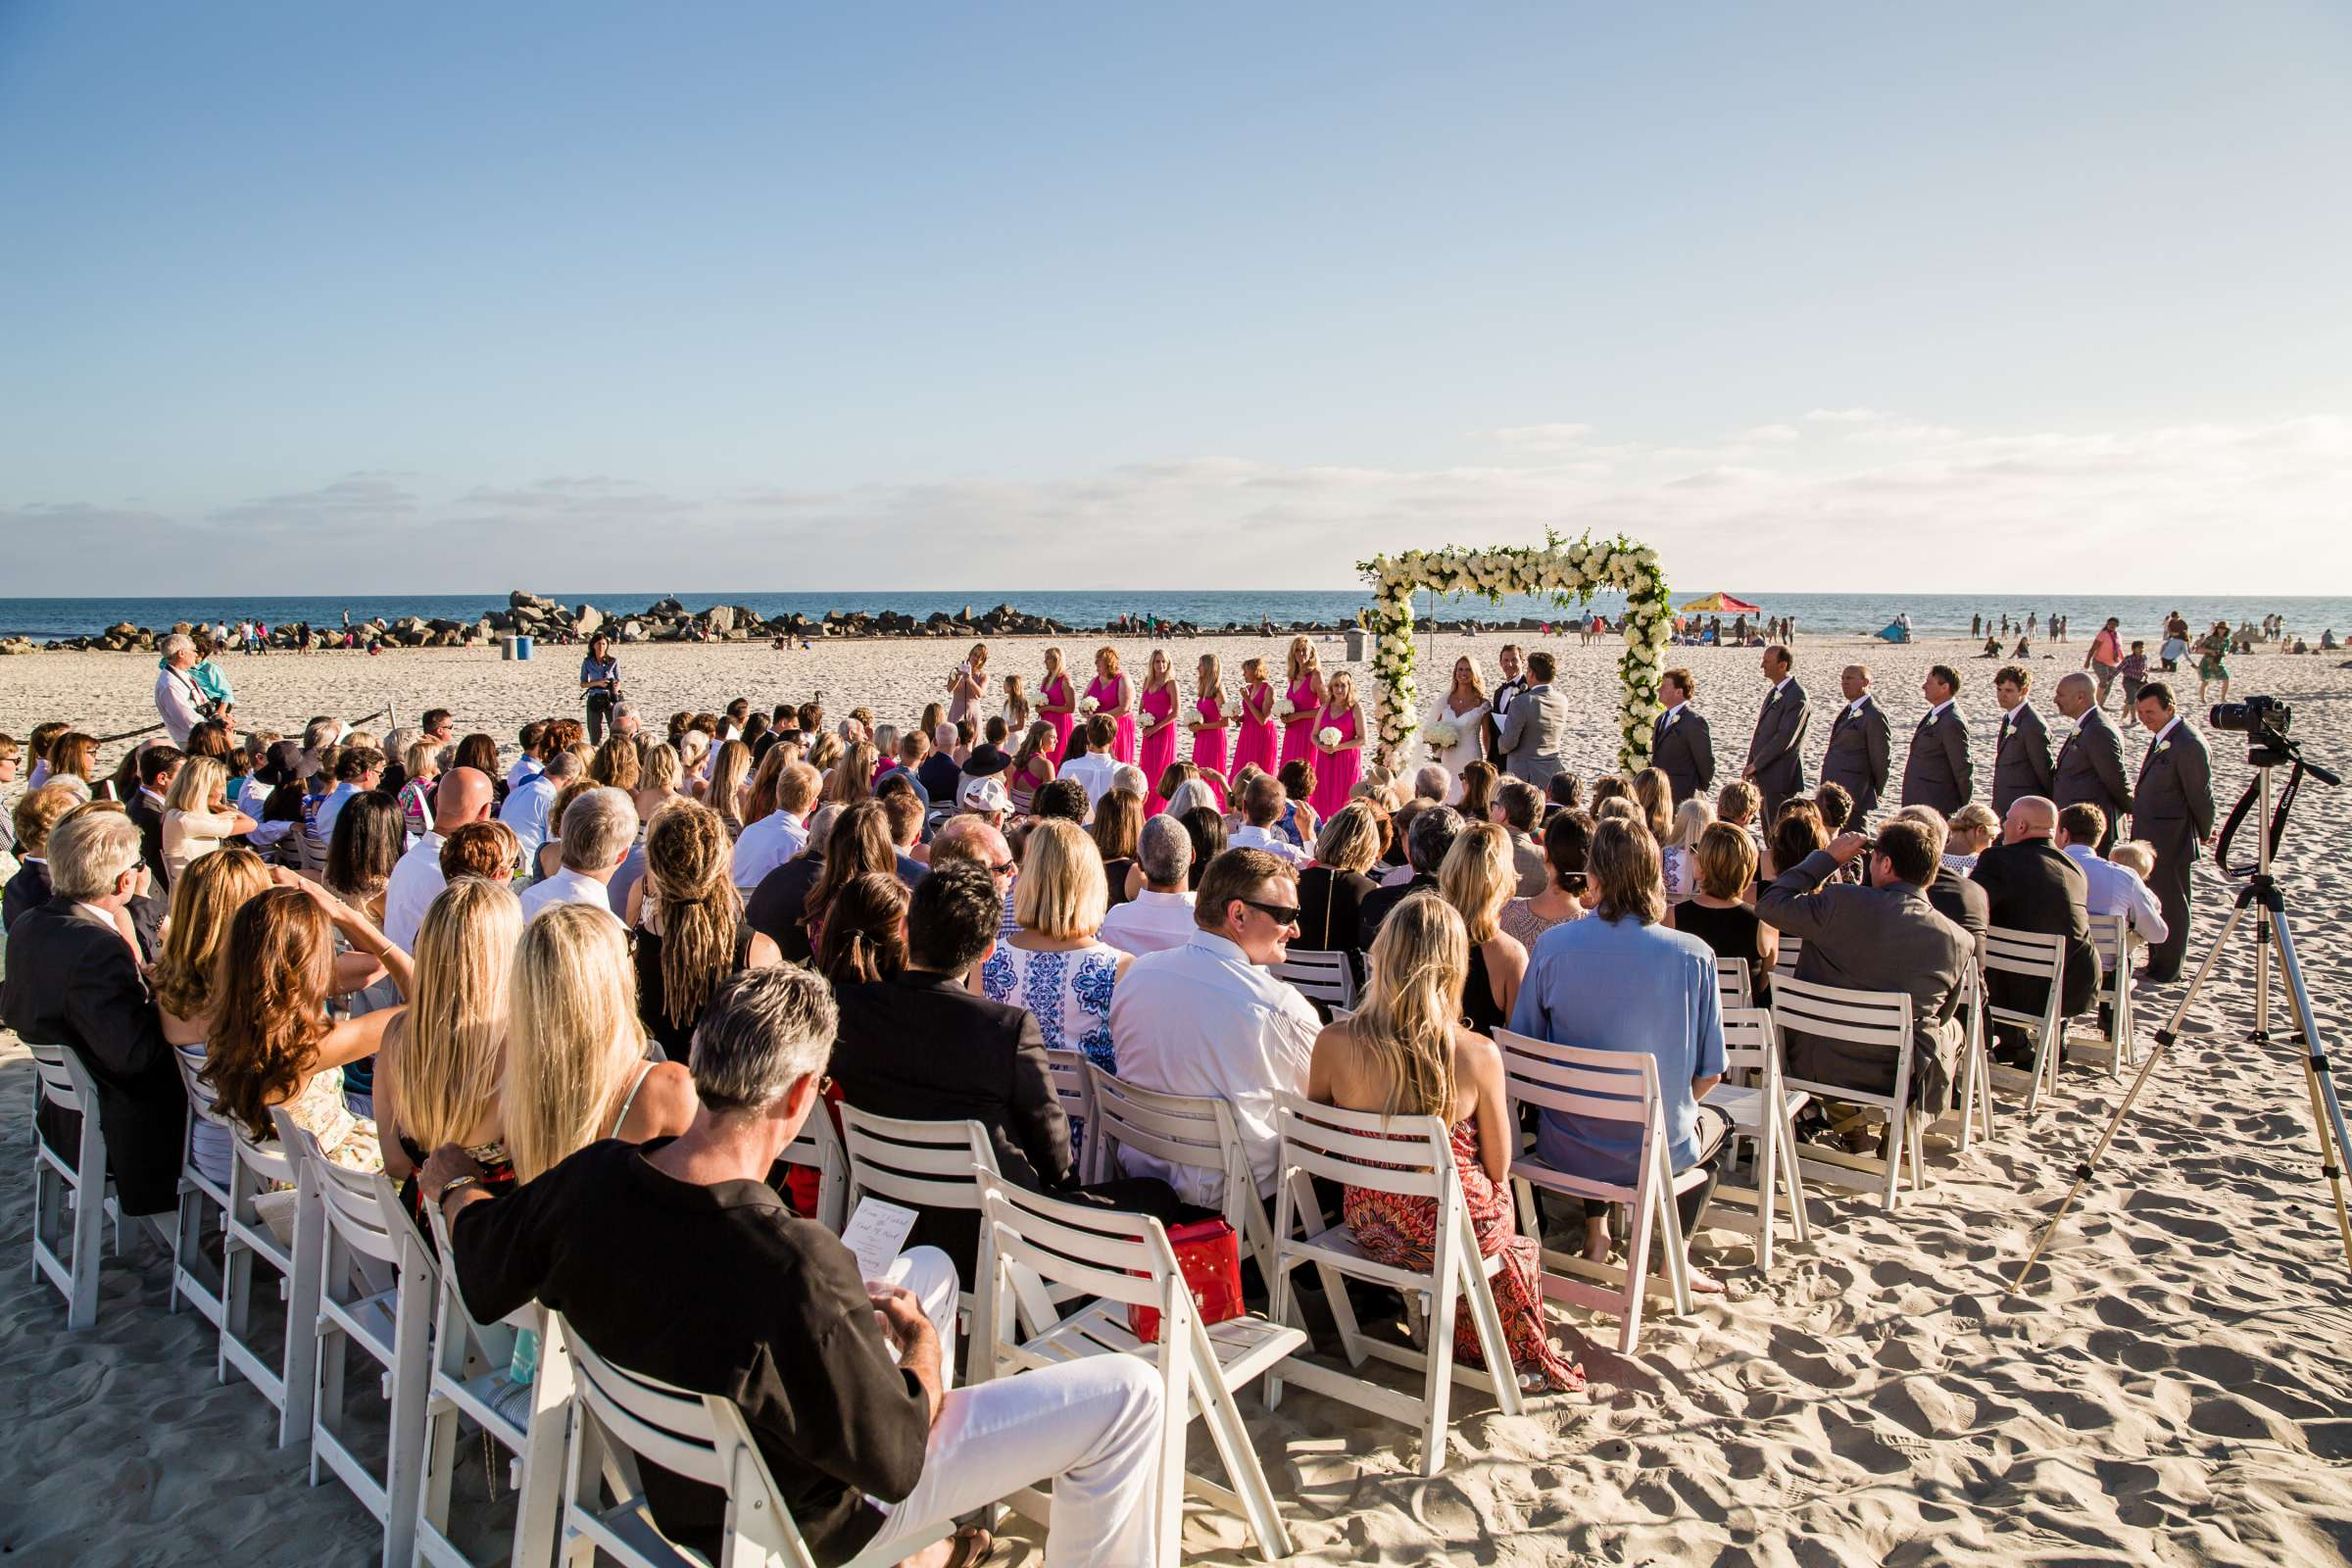 Hotel Del Coronado Wedding coordinated by Creative Affairs Inc, Diane and Paul Wedding Photo #57 by True Photography